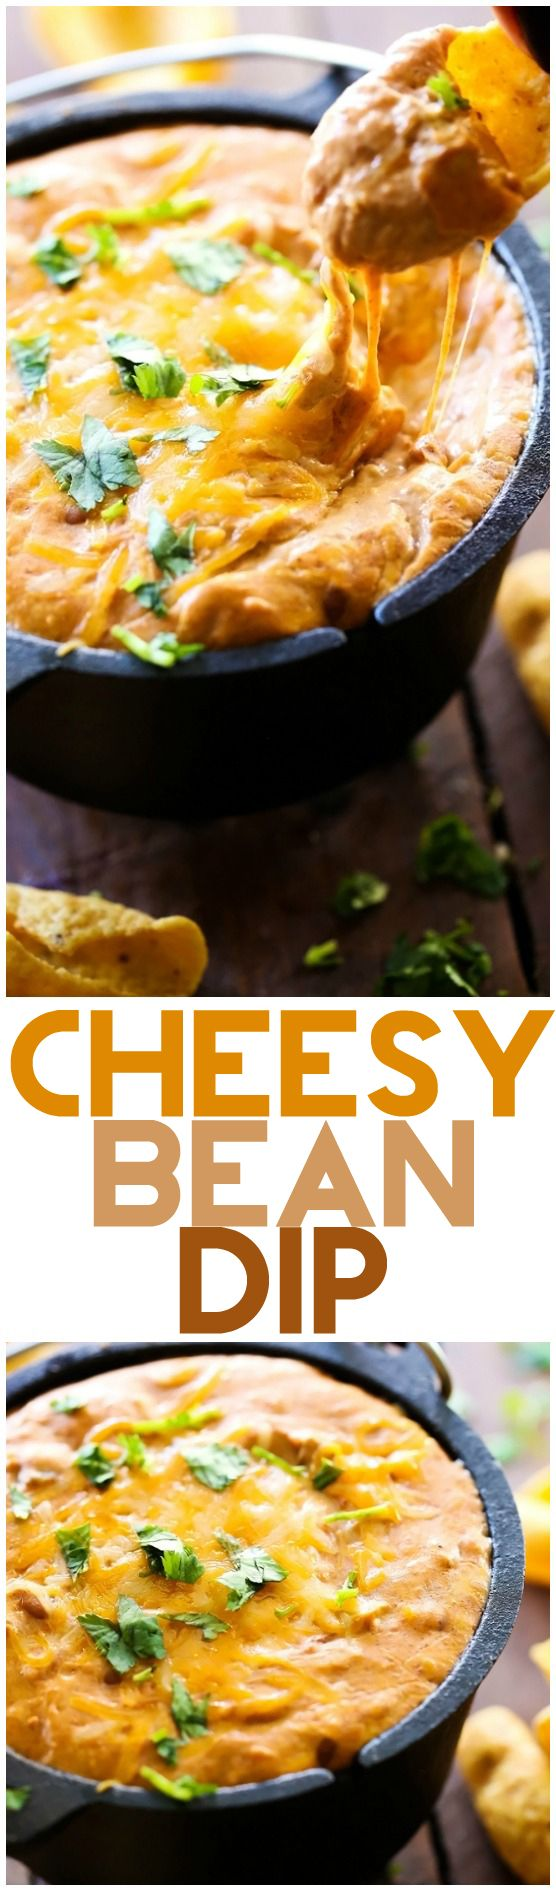 Cheesy Bean Dip... This dip is a crowd favorite! It is super simple to make and tastes incredible! Creamy, cheesy and delicious!